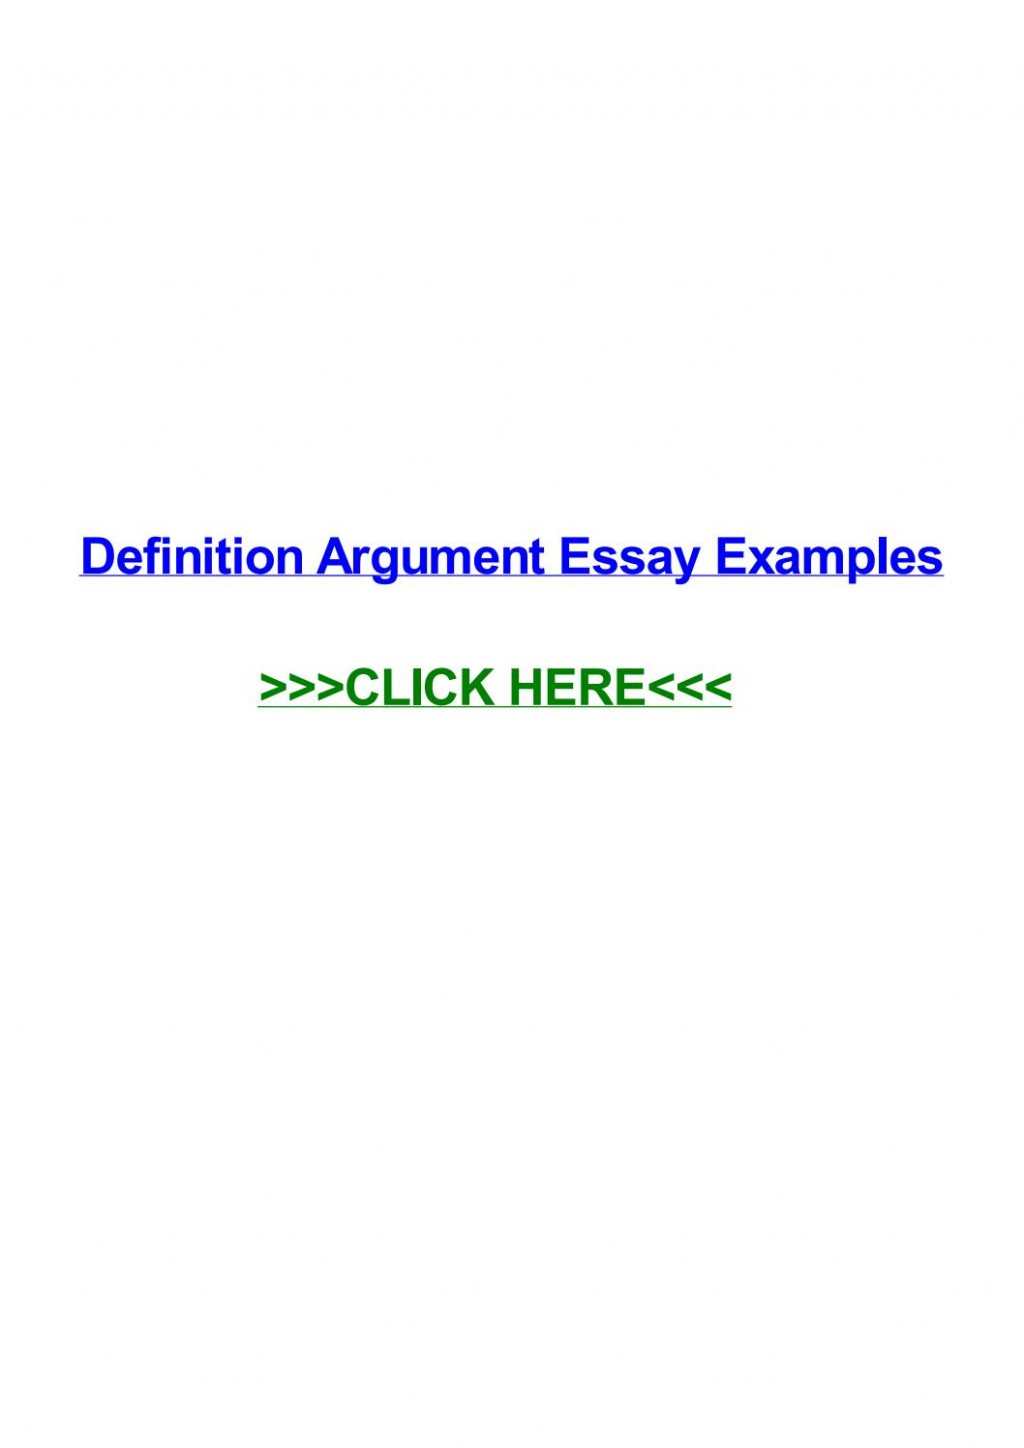 011 Essay Example Definition Argument Examples Page 1 Impressive Definitional Sample Large